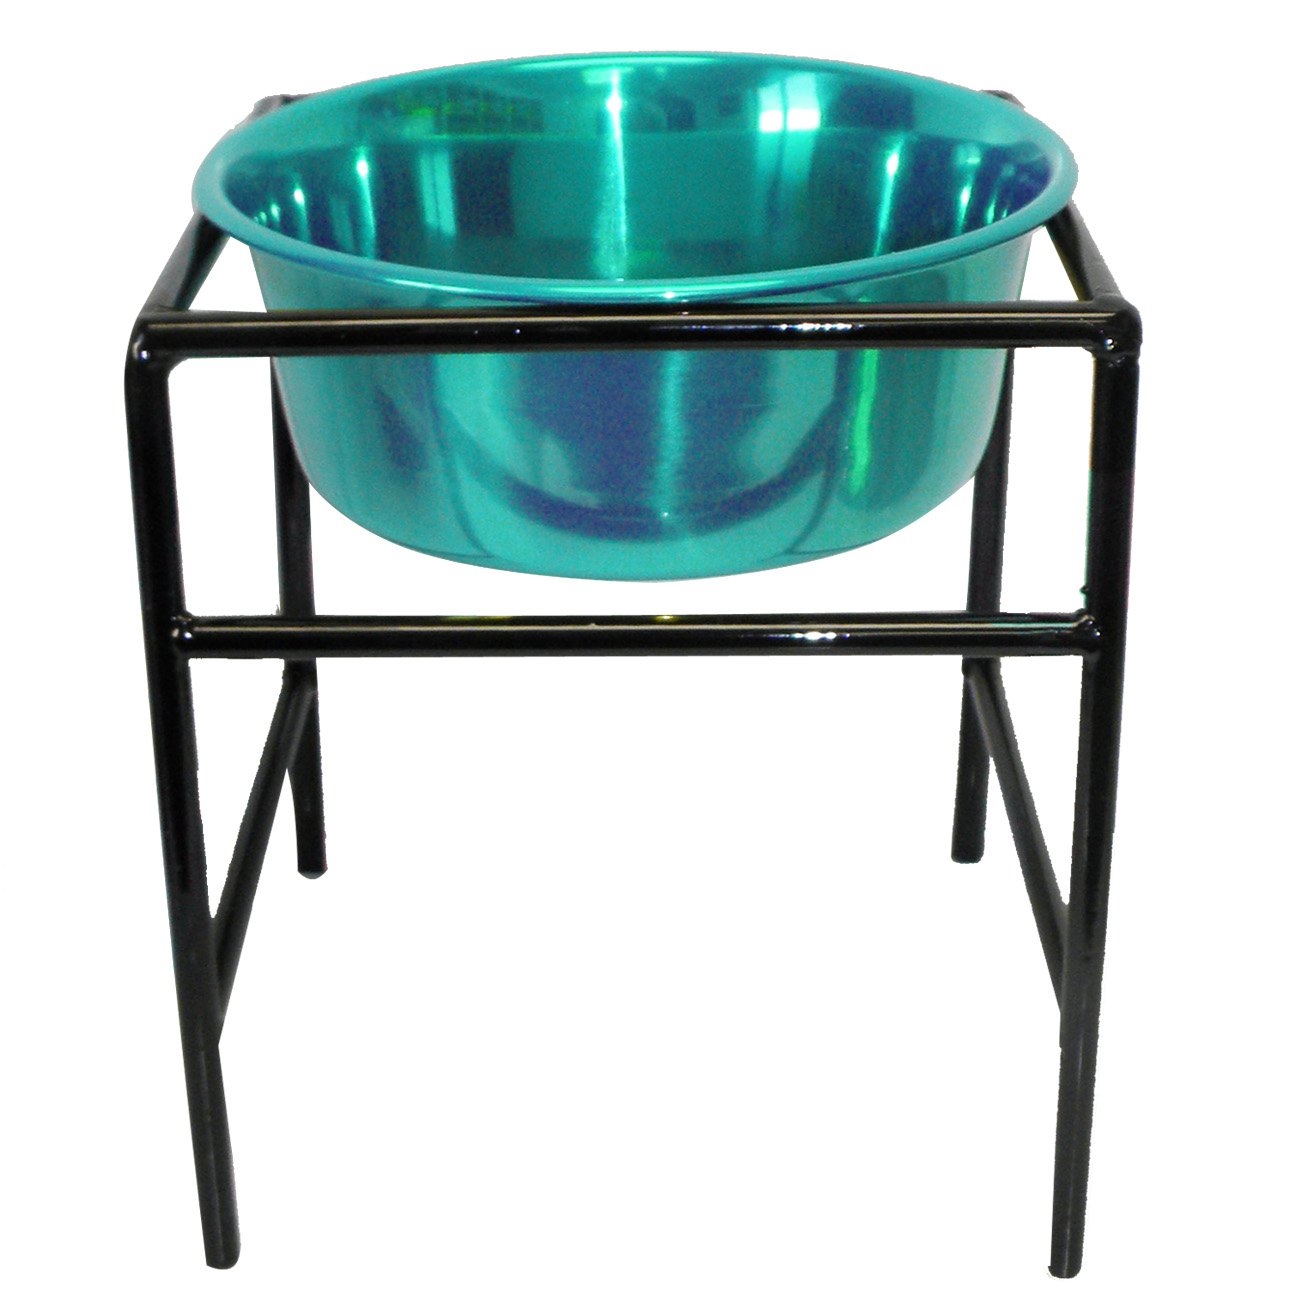 Platinum Pets Modern Single Diner Stand with 1-Quart Heavy Bowl, Teal